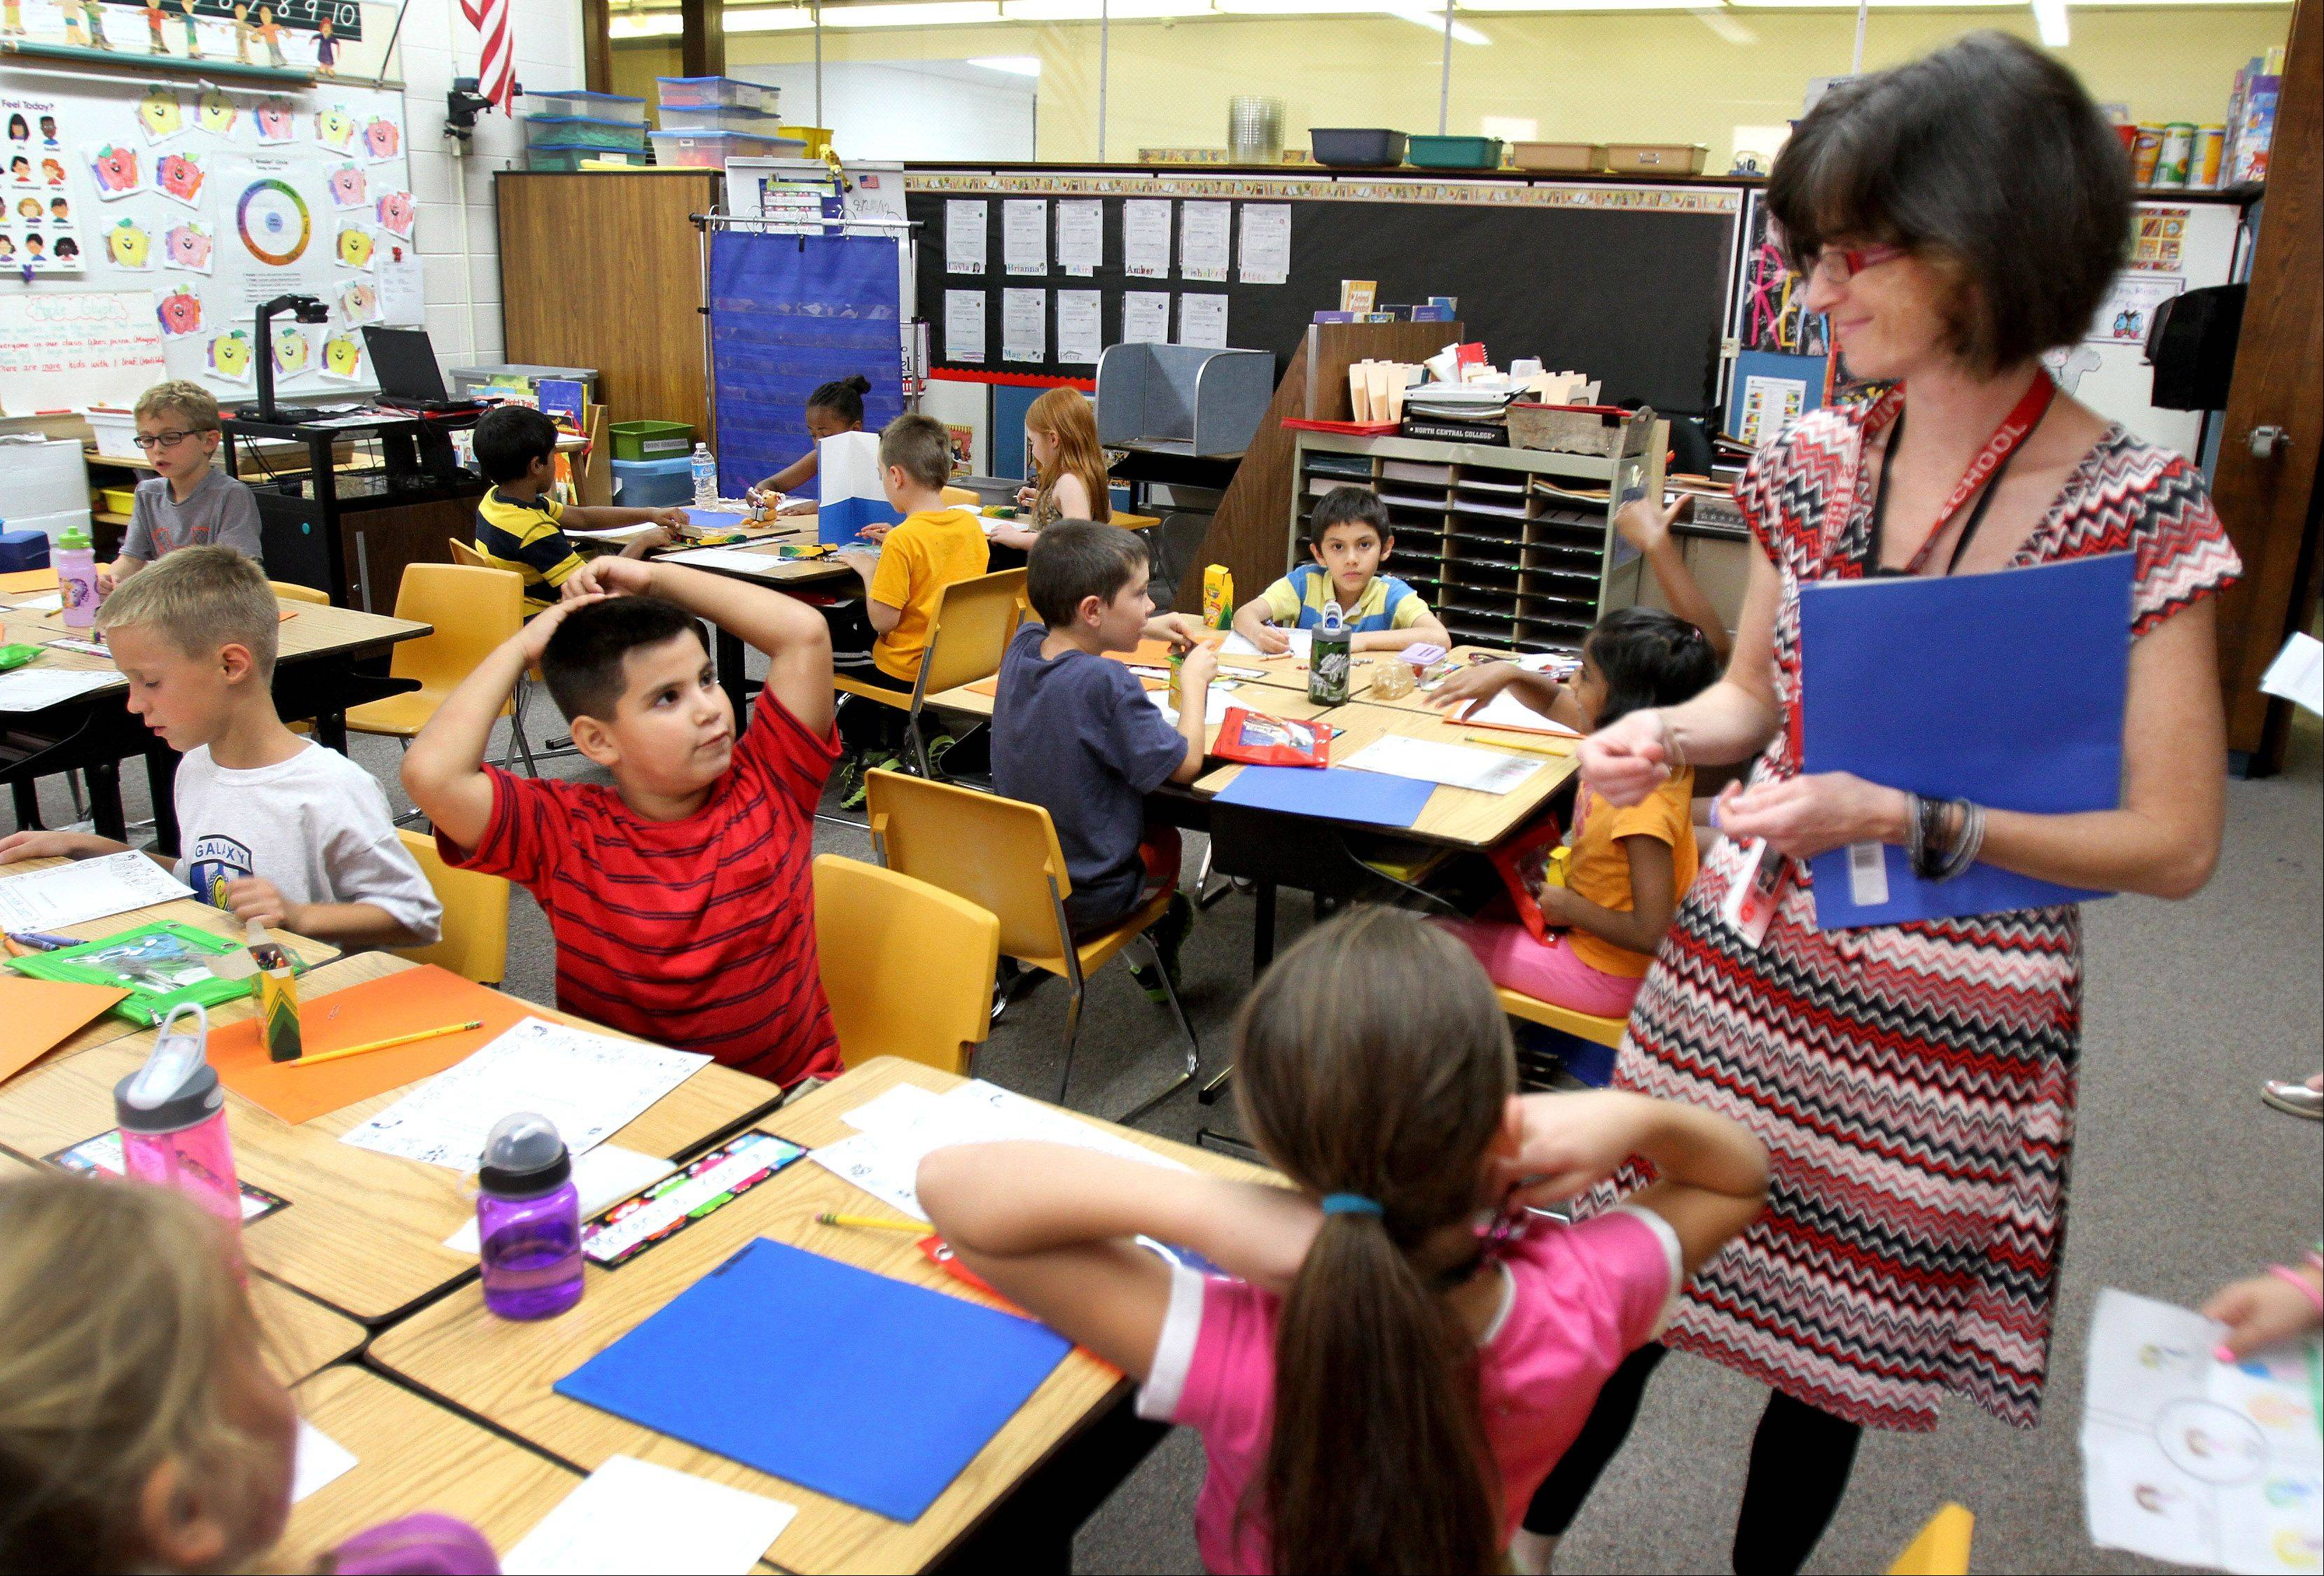 Second-grade teacher Jane Reich has about 12 fewer students in her Mill Street School classroom this fall thanks to boundary changes implemented by Naperville Unit District 203.